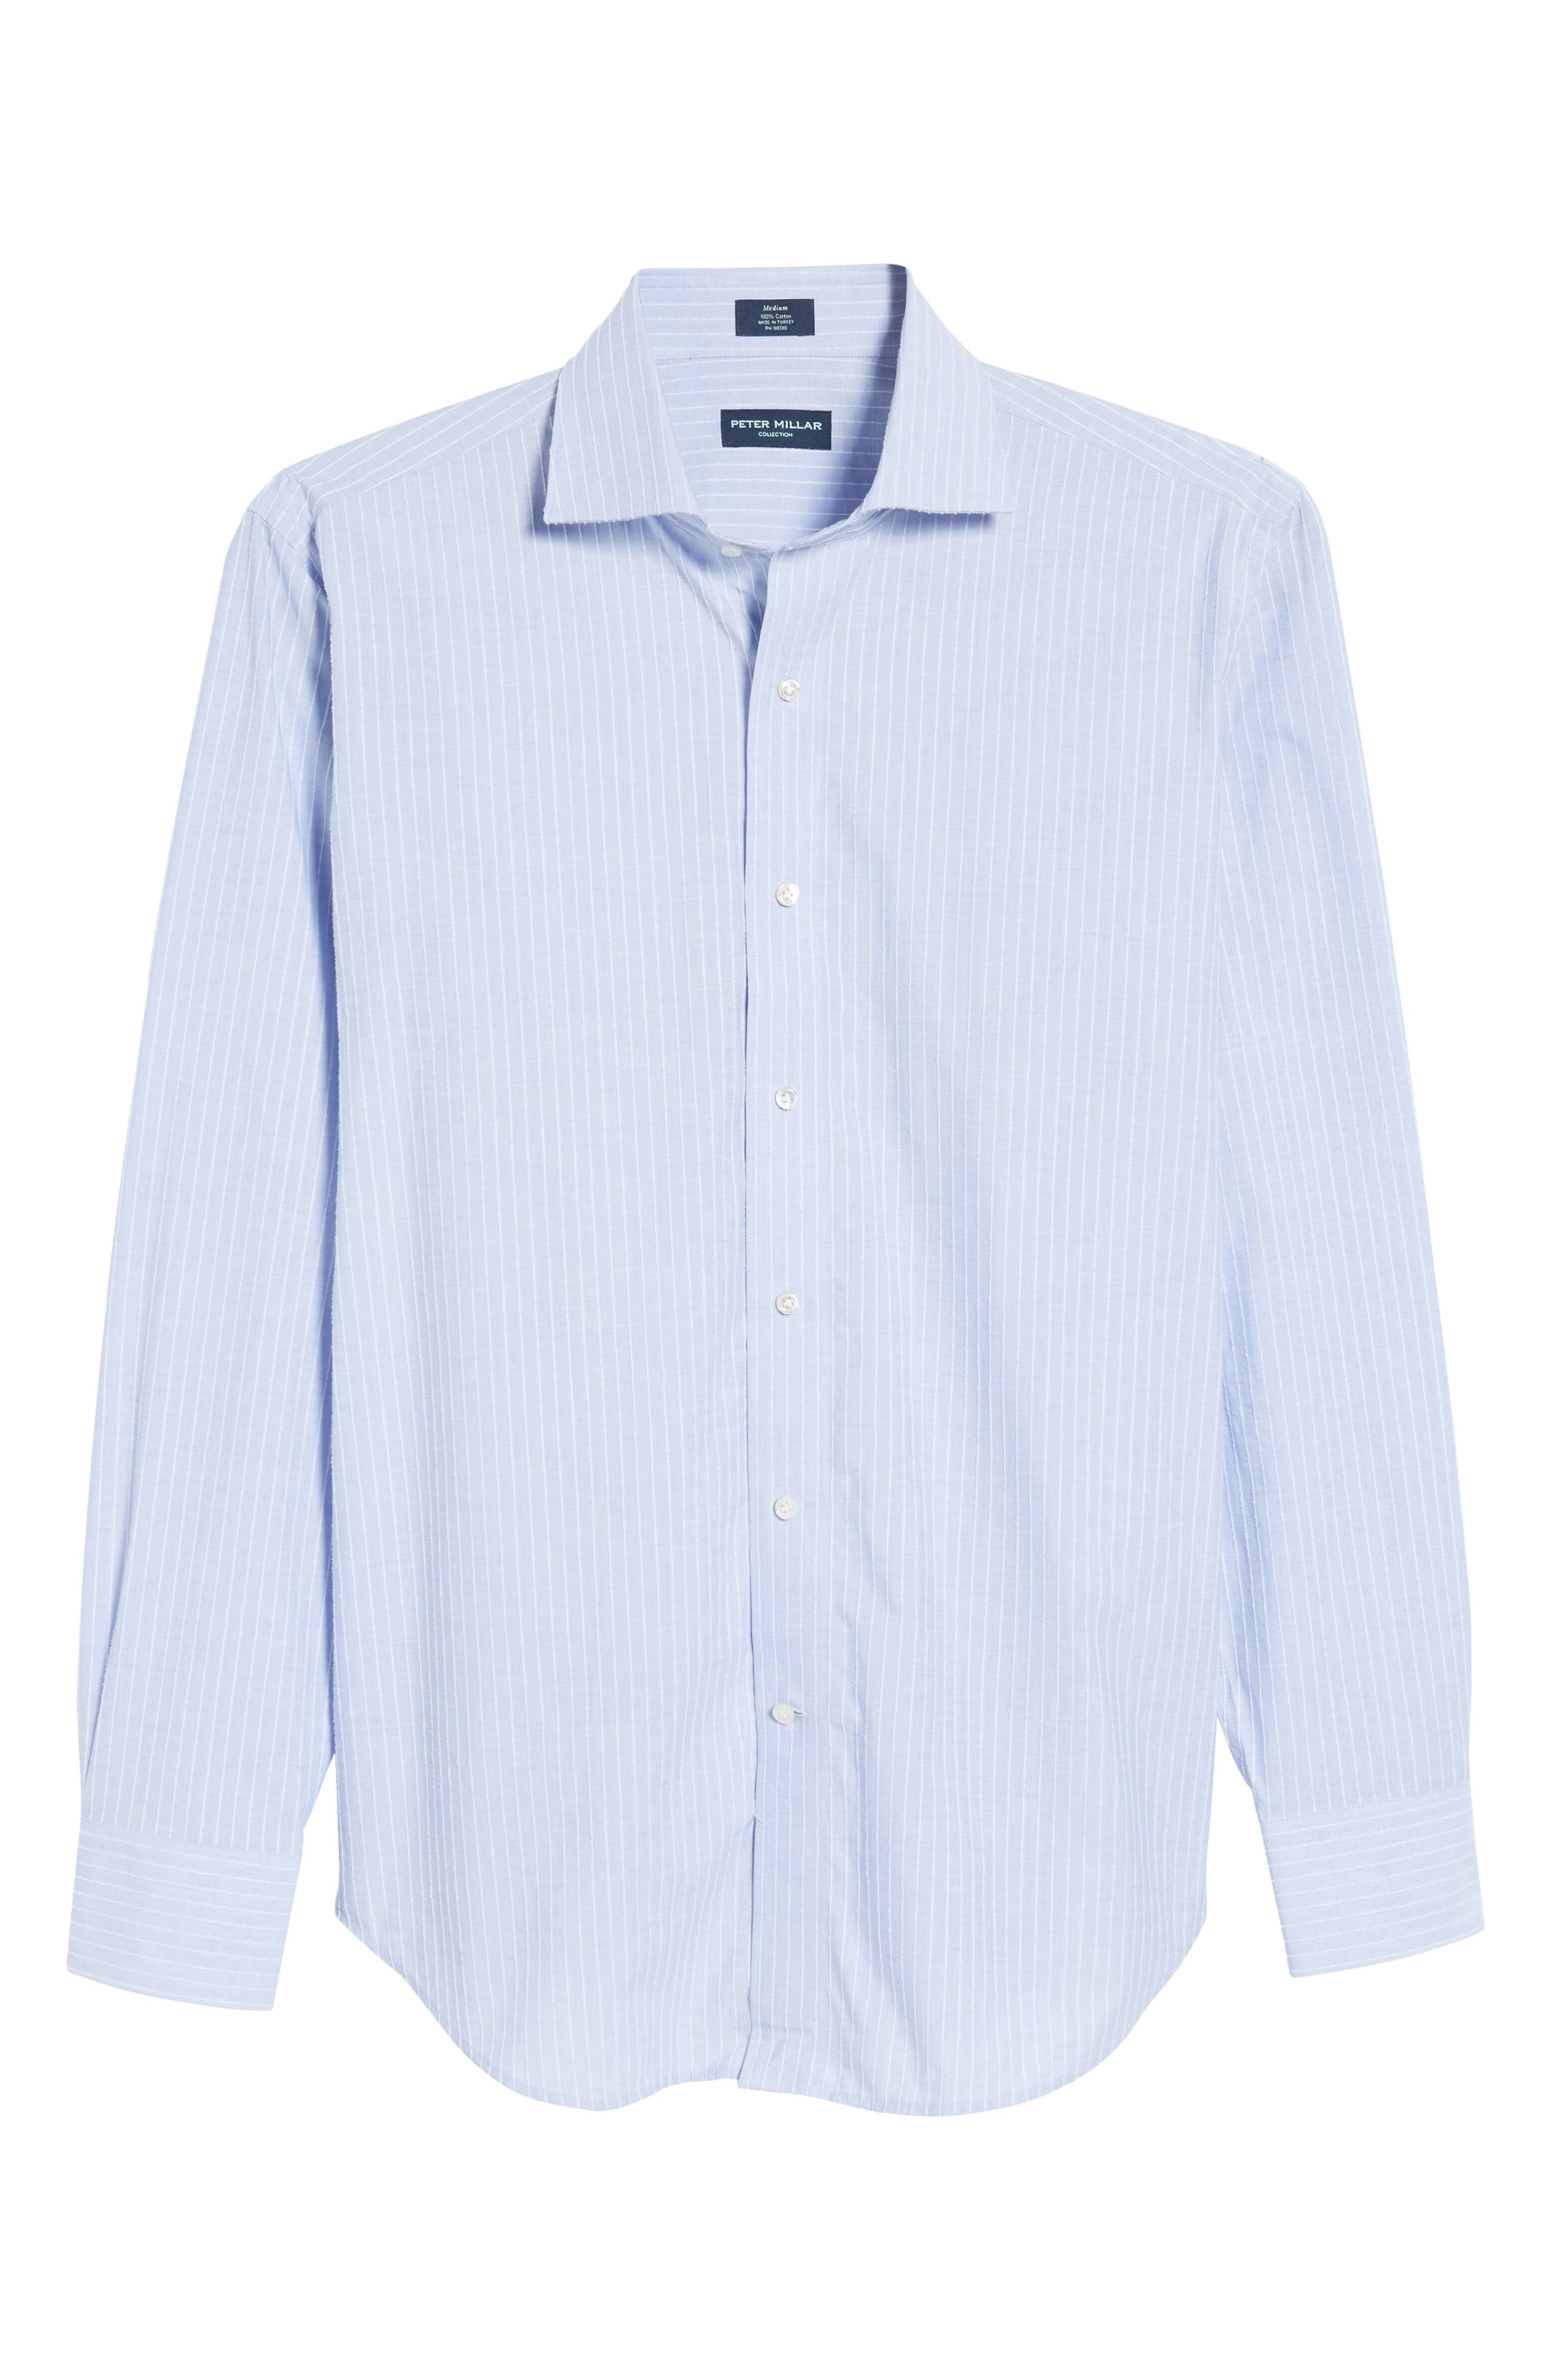 Cejar Stripe Sport Shirt,                             Alternate thumbnail 6, color,                             Blue Ceillo